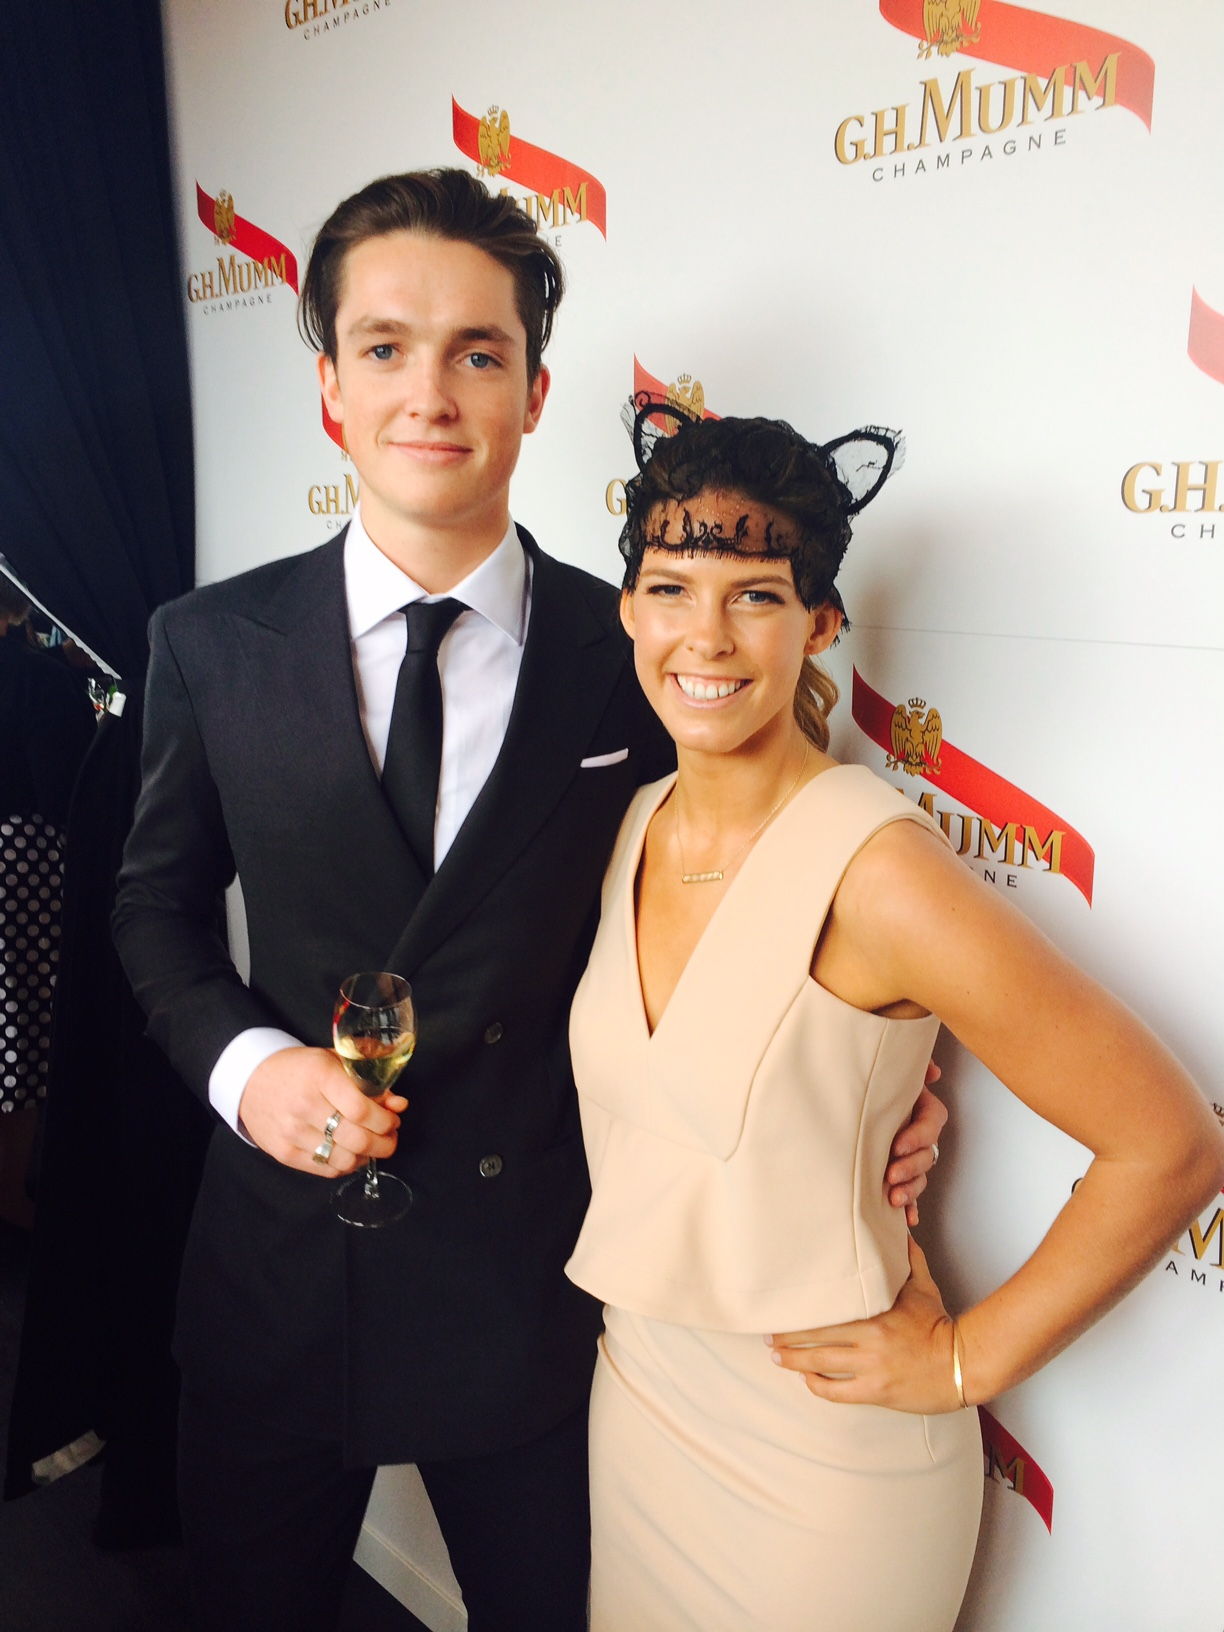 Winter Olympians Scotty James & Torah Bright - Melbourne Cup Day 2016